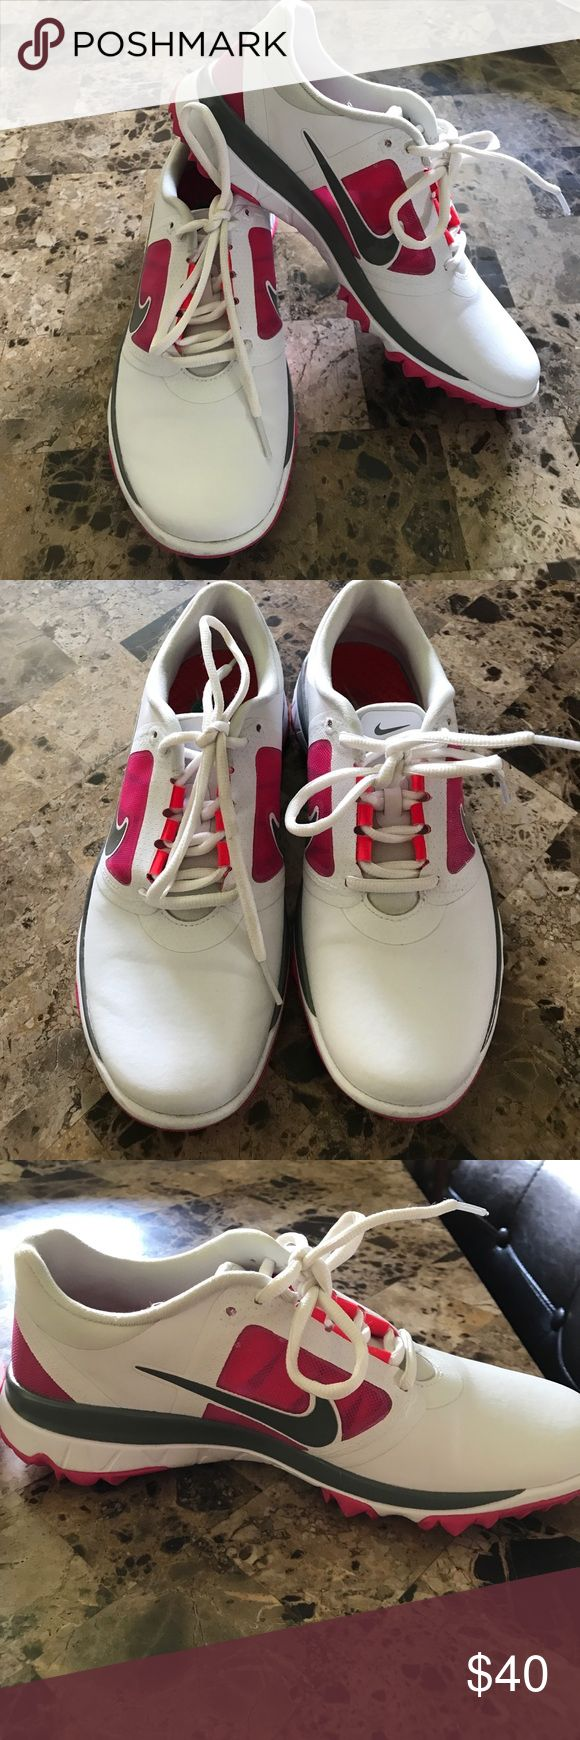 LIKE NEW! Women's NIKE Running 🏃 Sneakers Sz 8 Like new! Nike women's running sneakers. Size 8. Worn once. Comes from a smoke free and pet free home 🏡 Nike Shoes Athletic Shoes